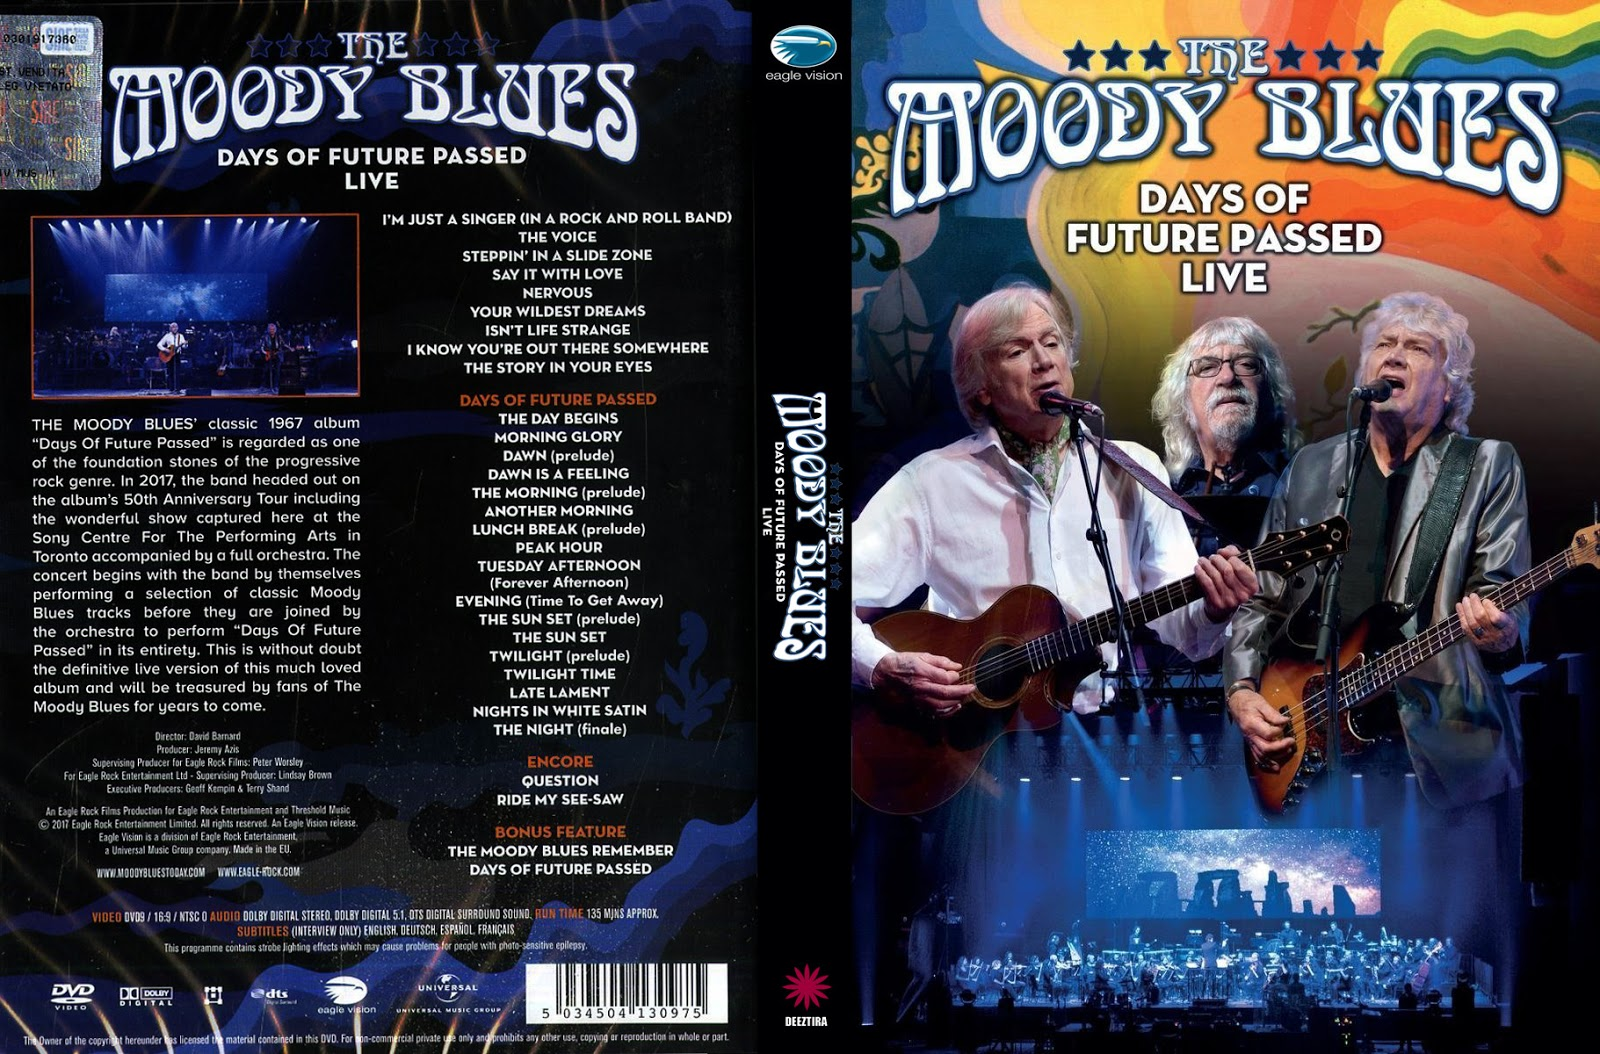 YOUDISCOLL: Moody Blues - Days of Future Passed Live (2017)